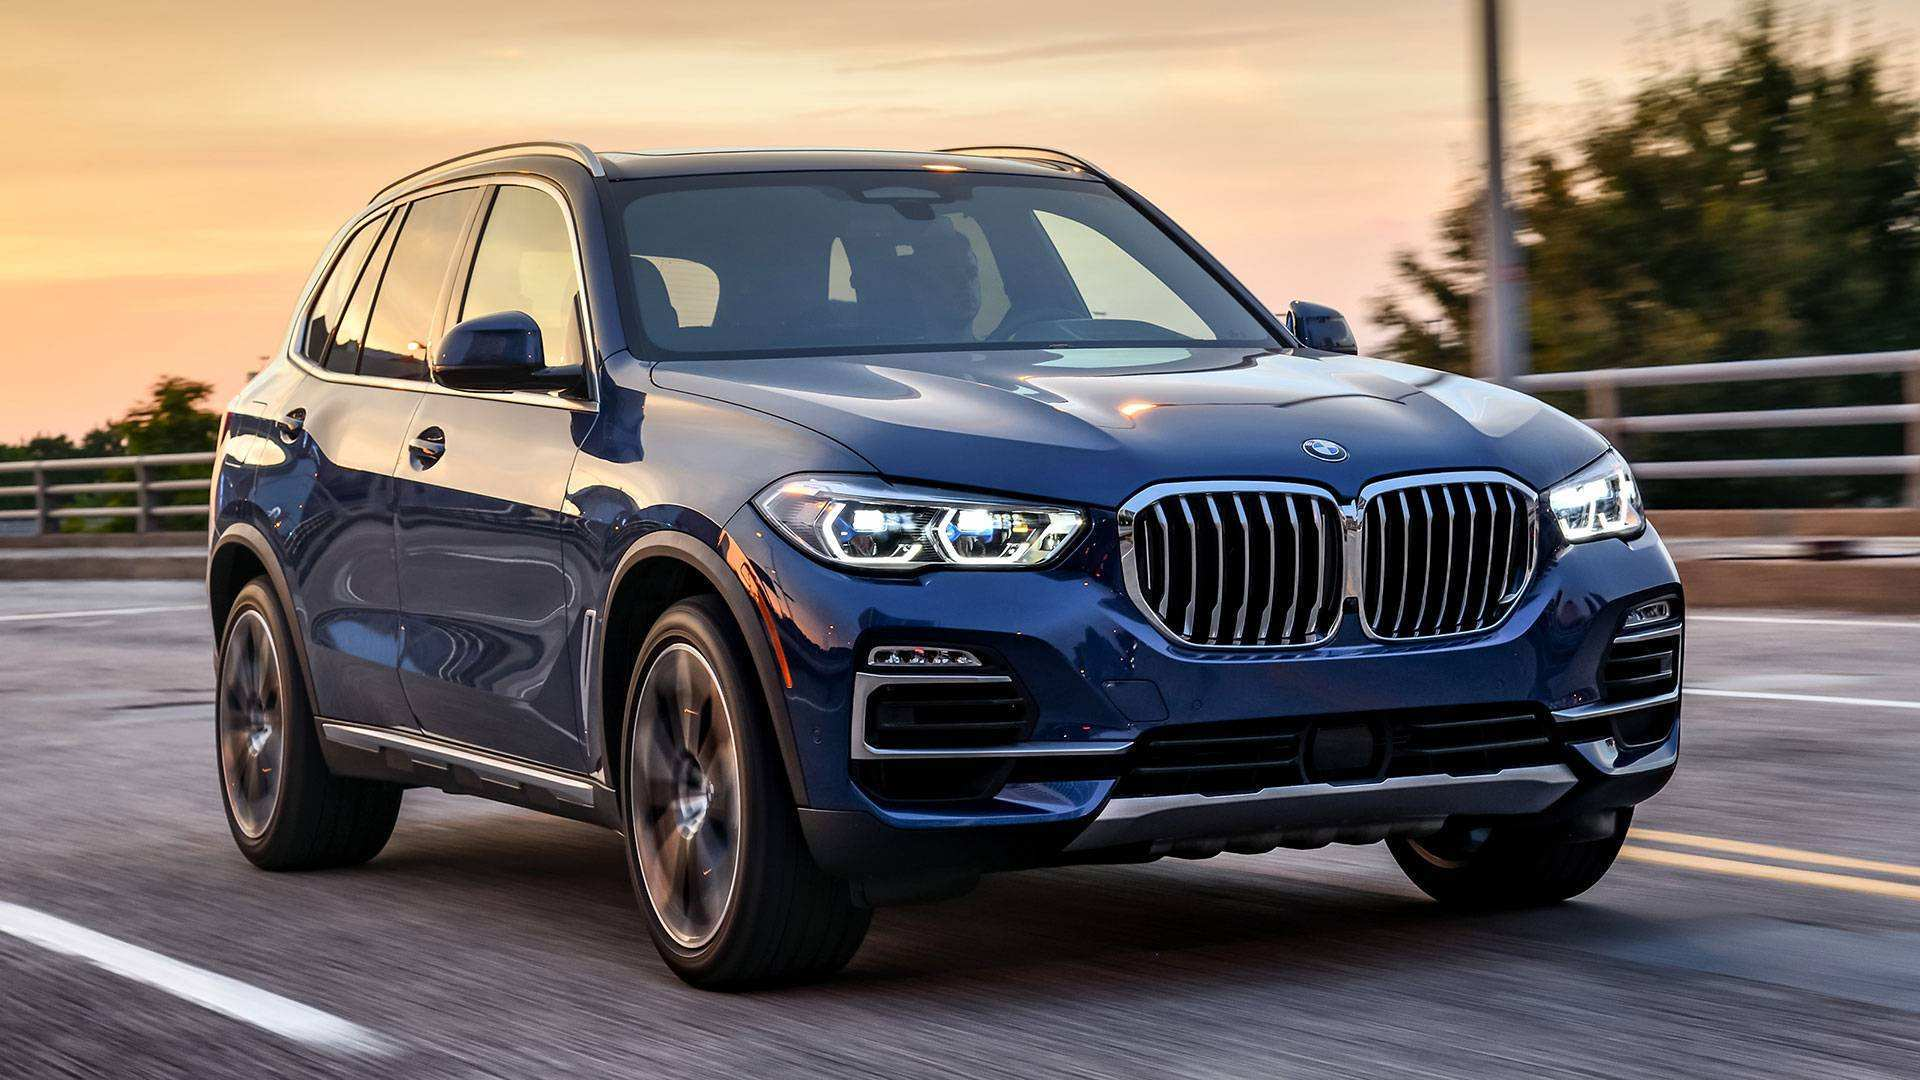 63 Great Bmw X5 2019 Price Usa First Drive Price Performance And Review Speed Test by Bmw X5 2019 Price Usa First Drive Price Performance And Review